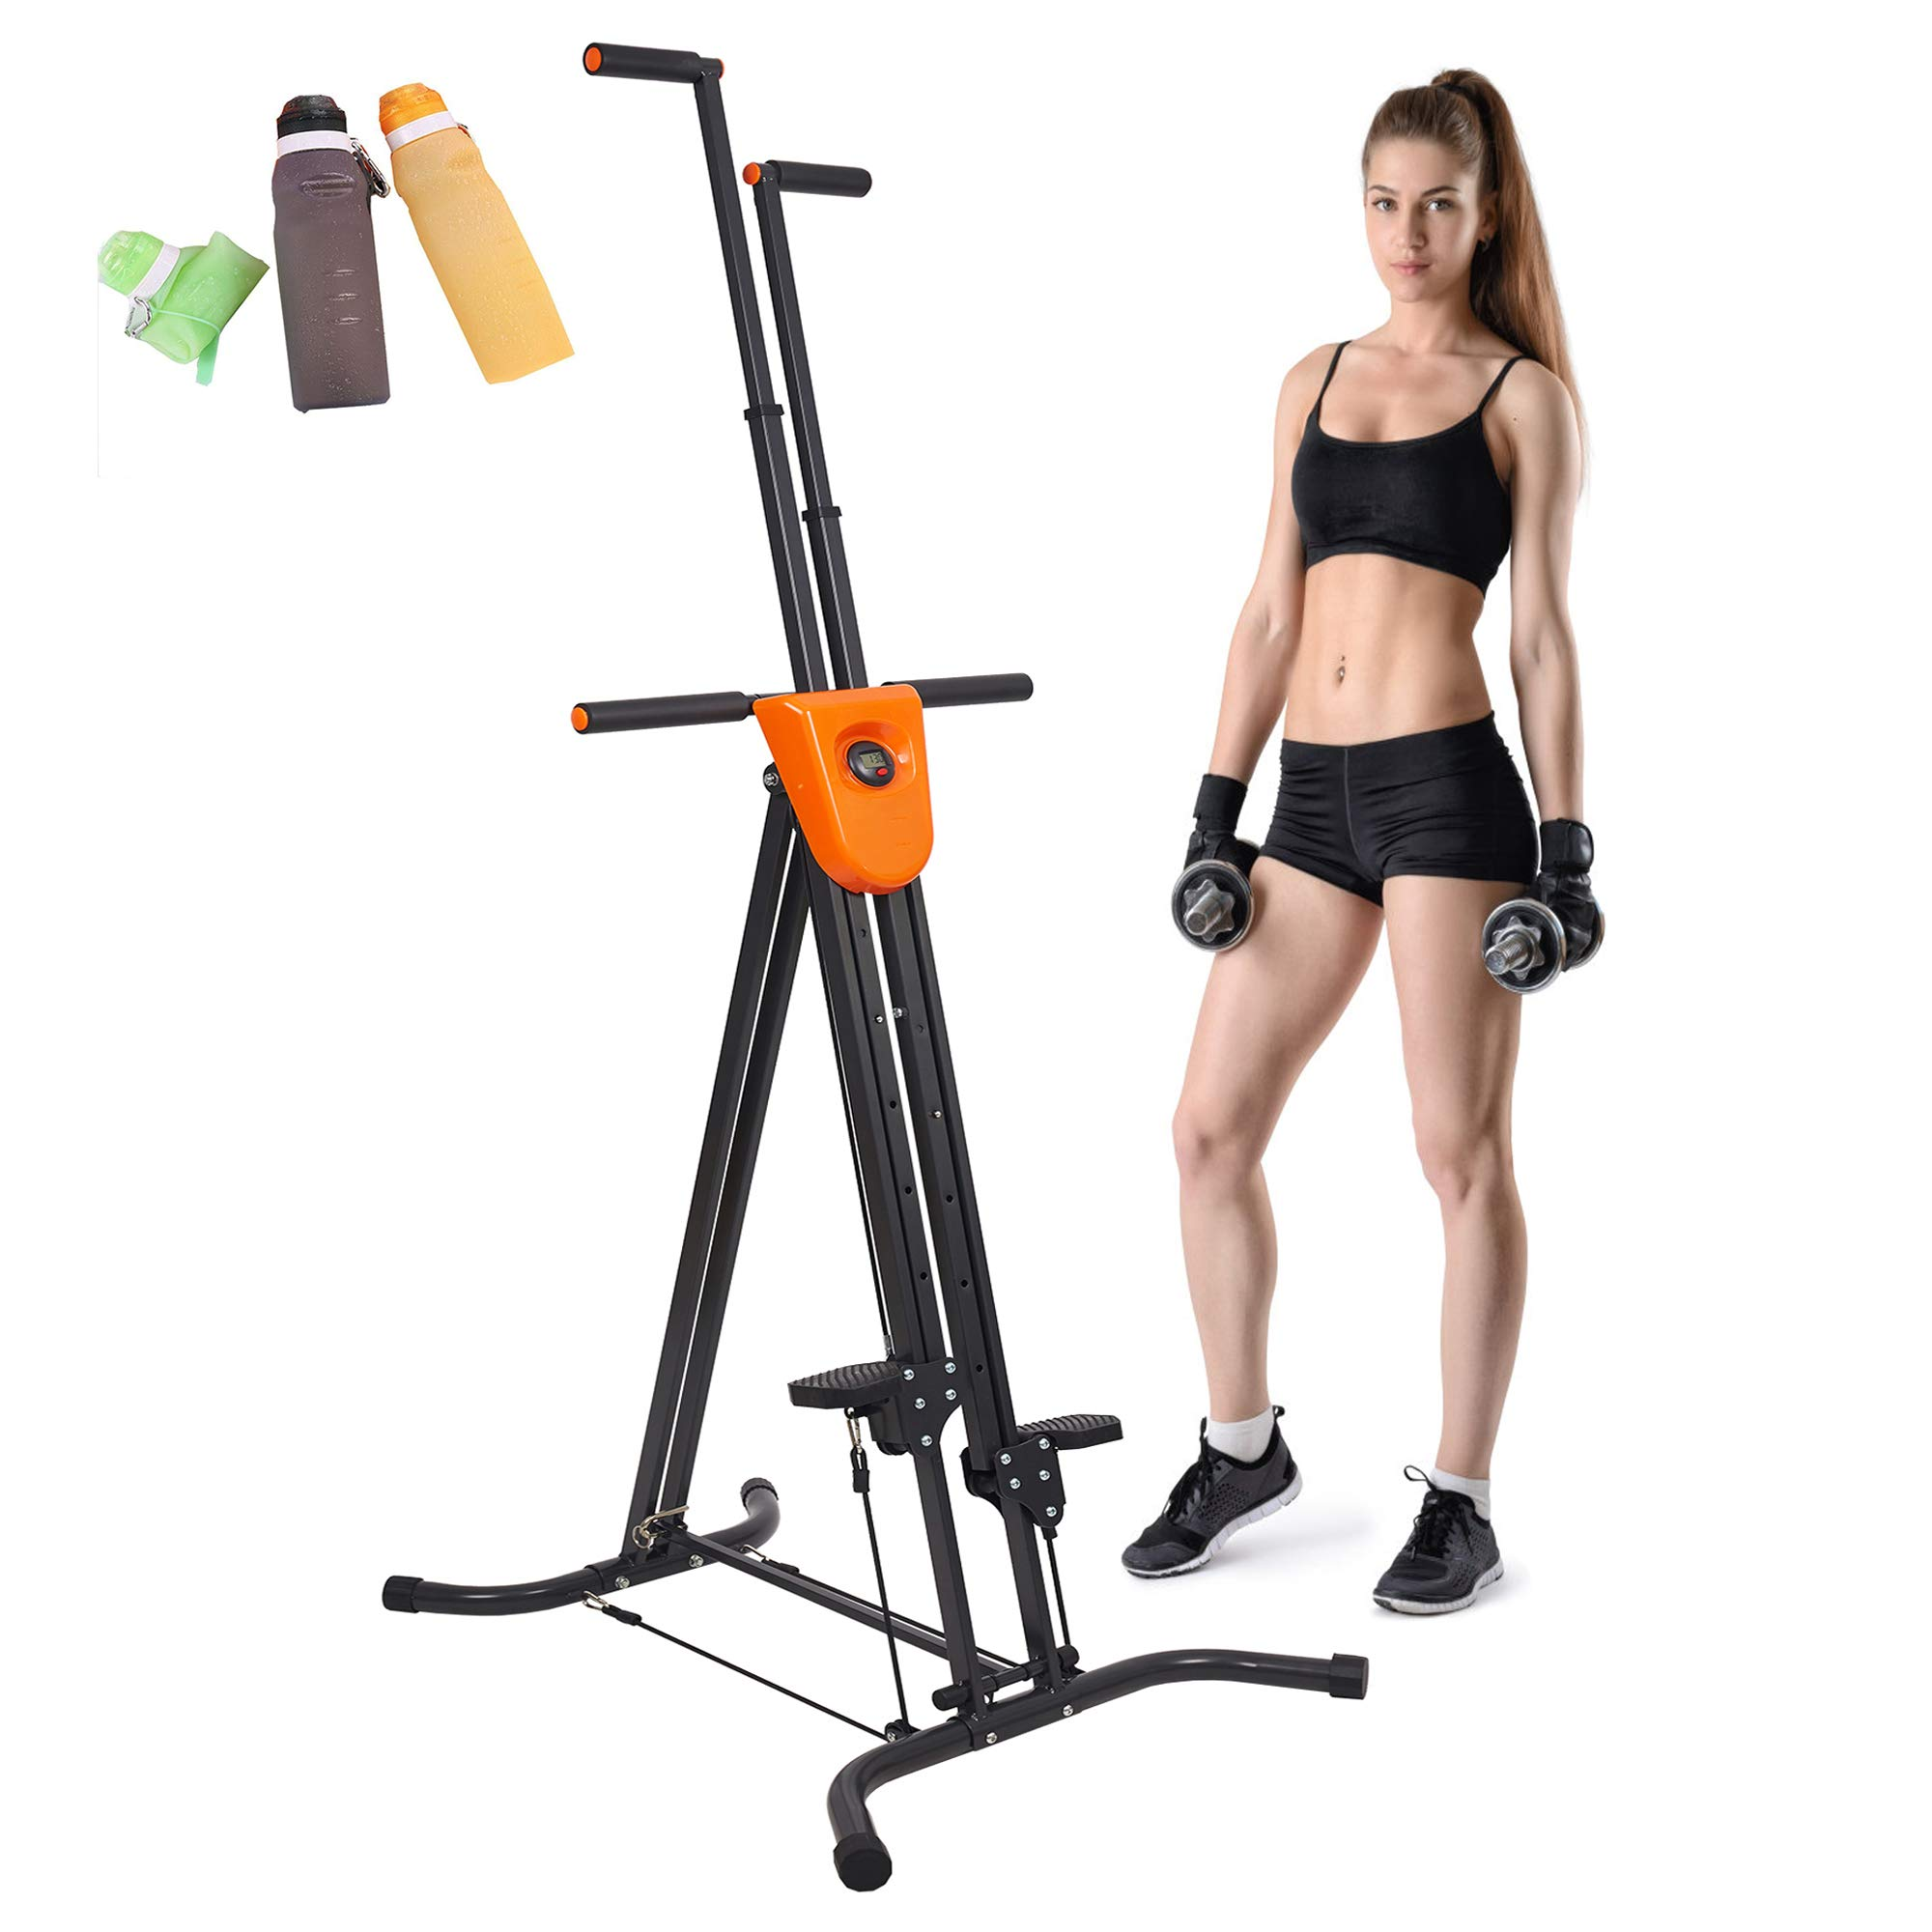 Lucky Tree Stair Climber Exercise Machine Vertical Climber Stairs Gym Home Fitness Folding Stair Stepper Adjustable Height for Women Man Full Total Body Workout